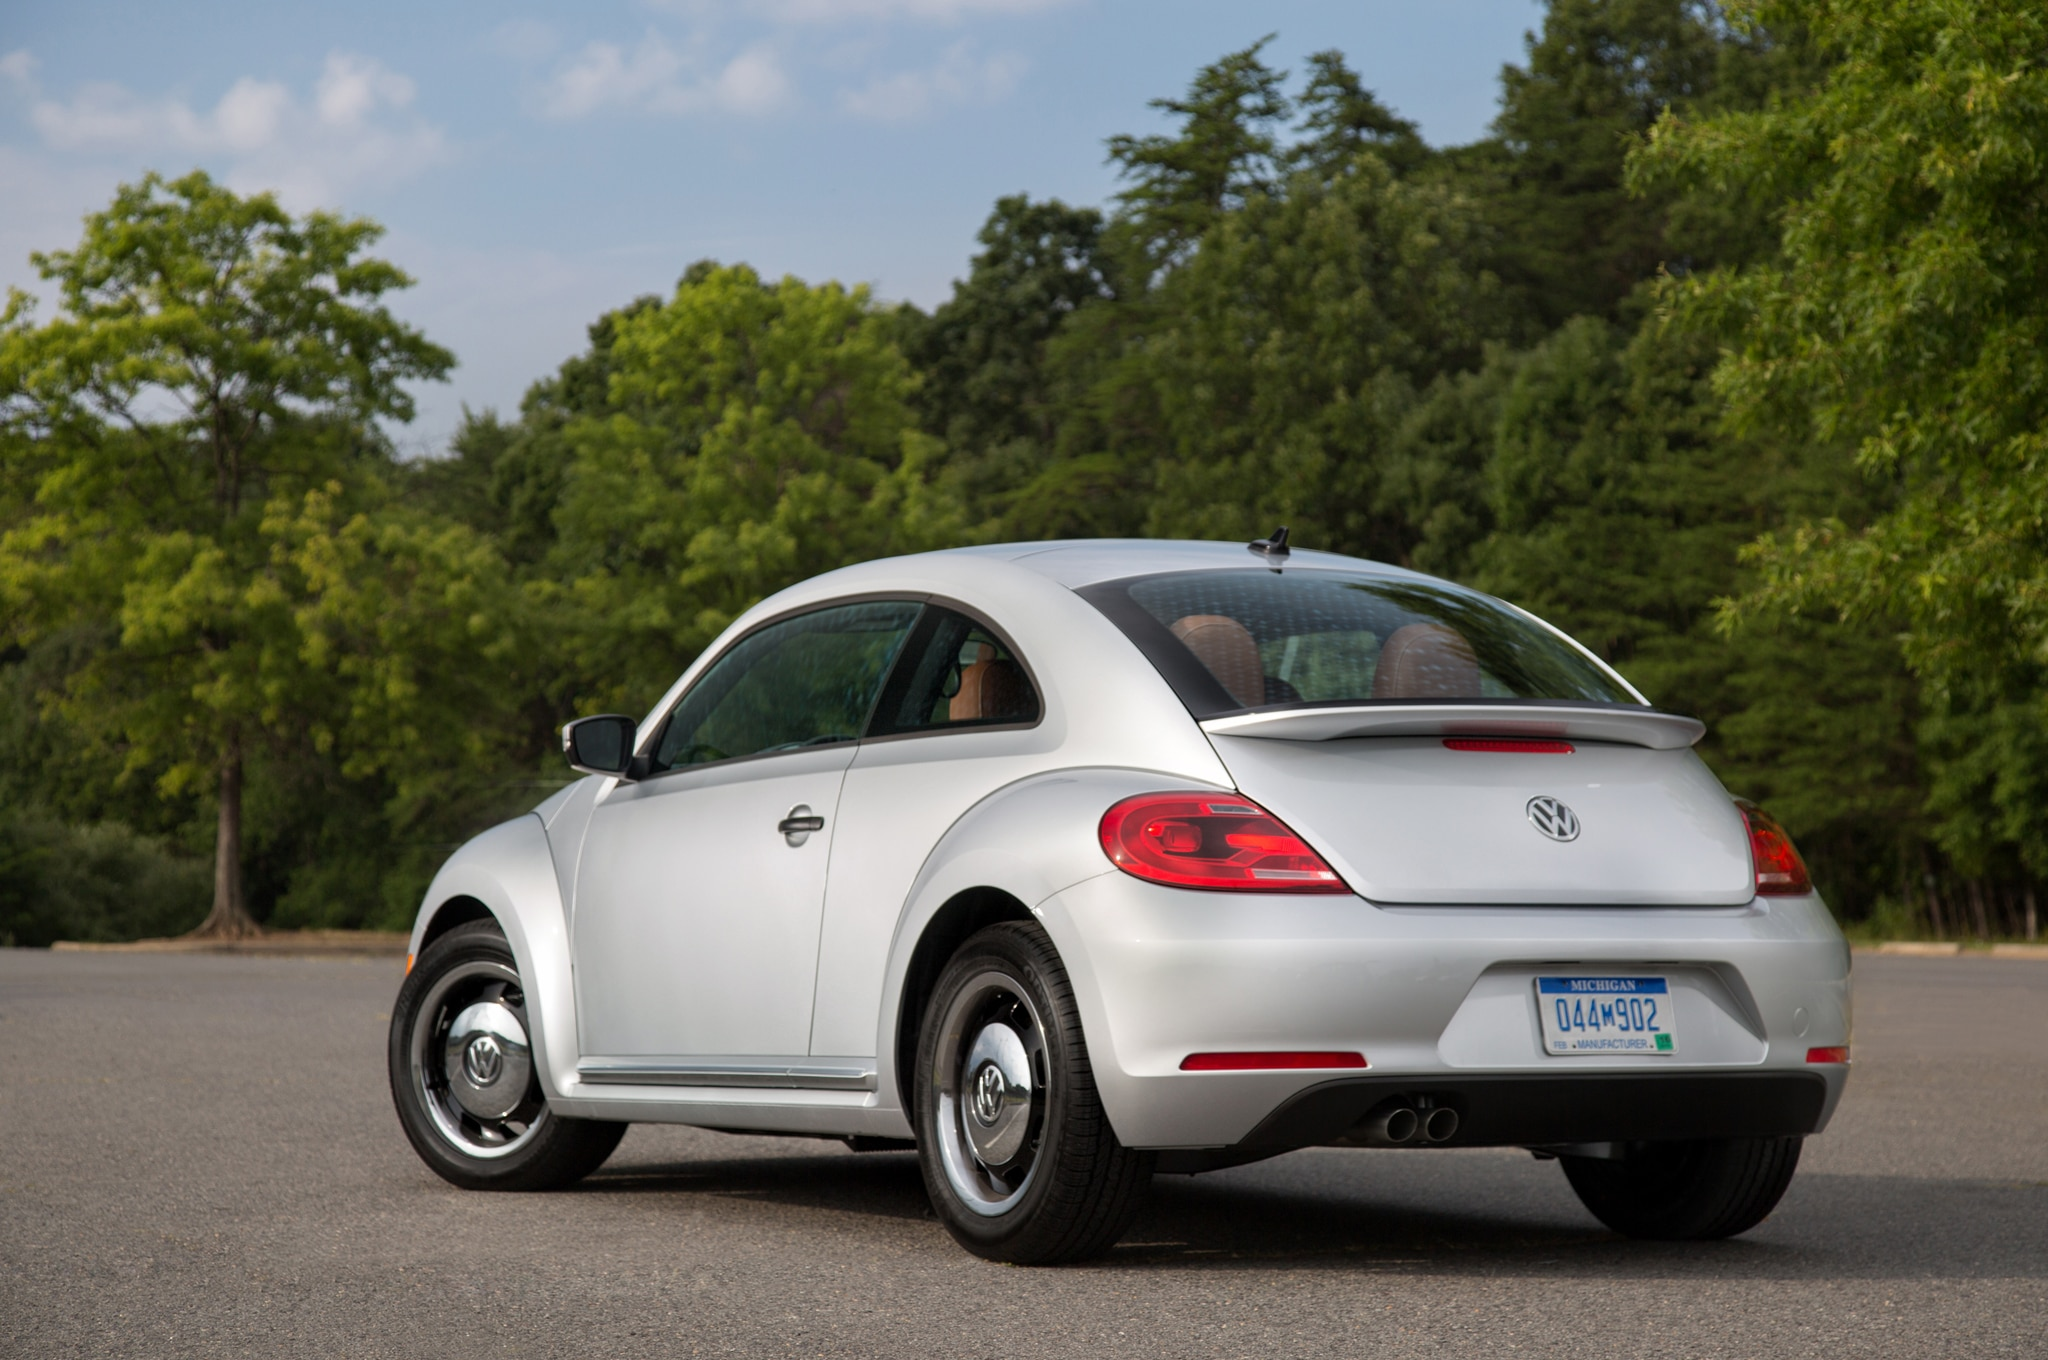 Volkswagen Convertible Beetle >> Volkswagen Beetle to Die in 2018? | Automobile Magazine